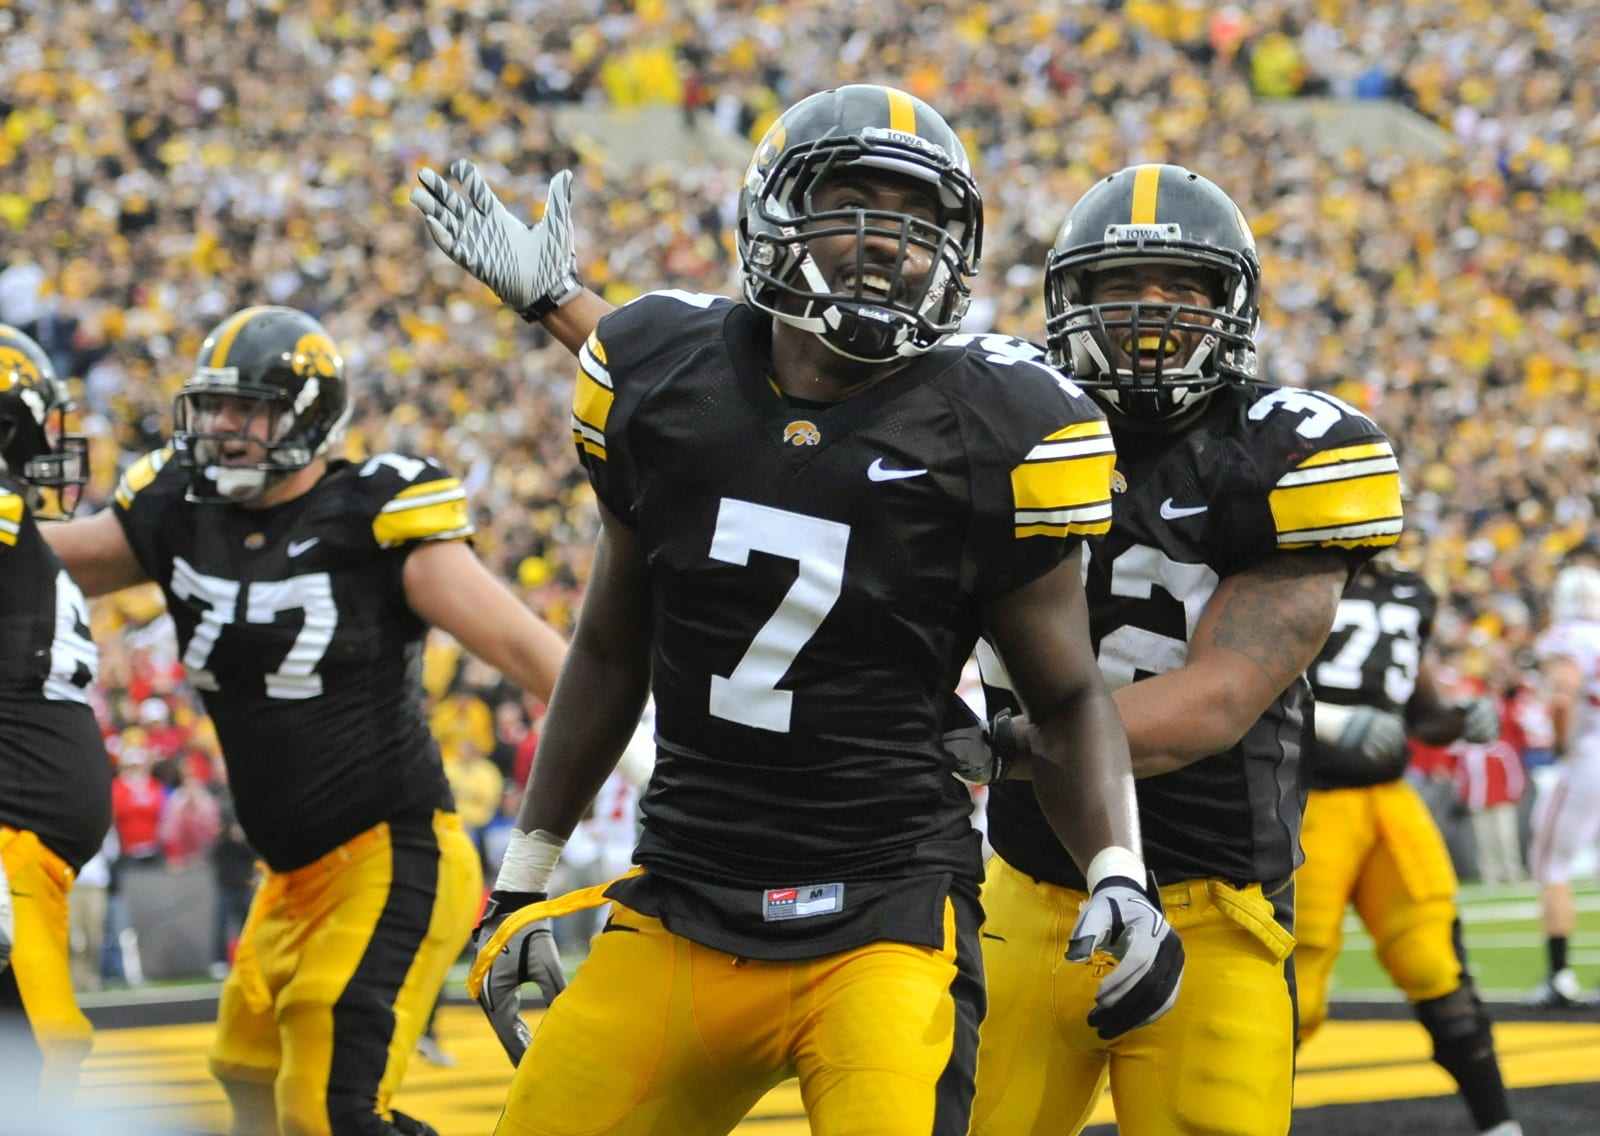 Marvin McNutt, Iowa Hawkeyes